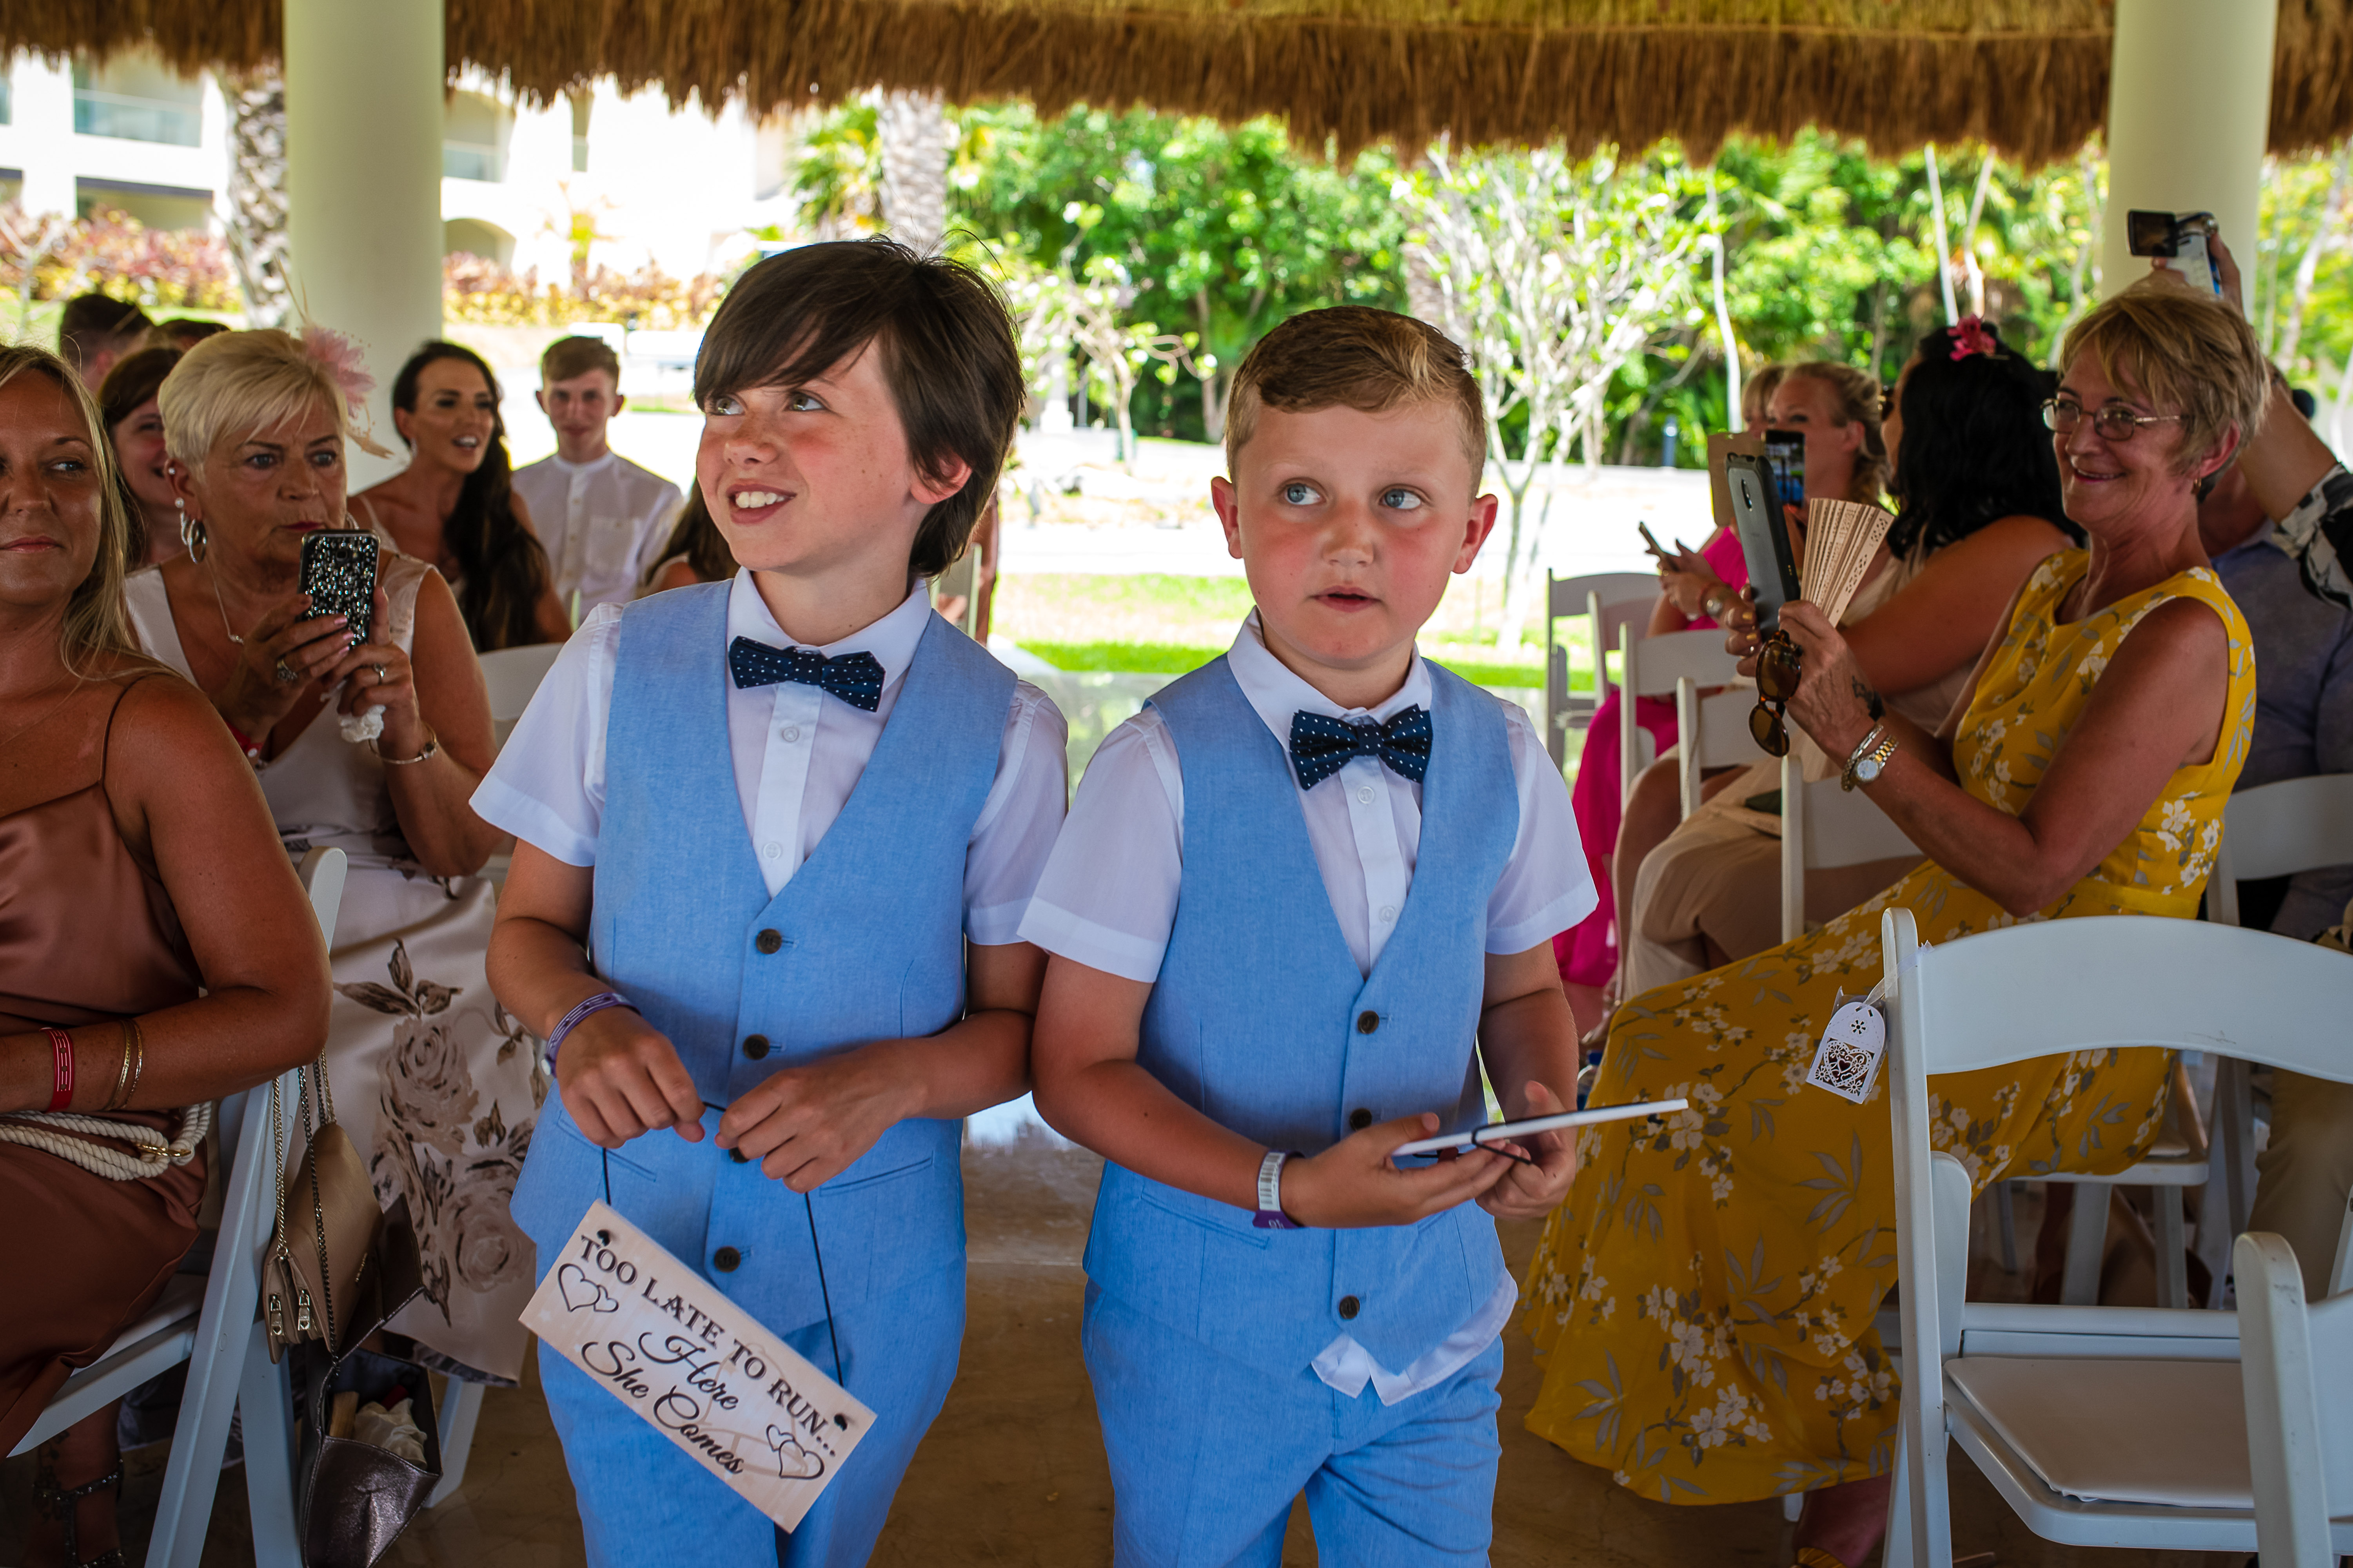 children with signs walking towards groom last chance to run warning